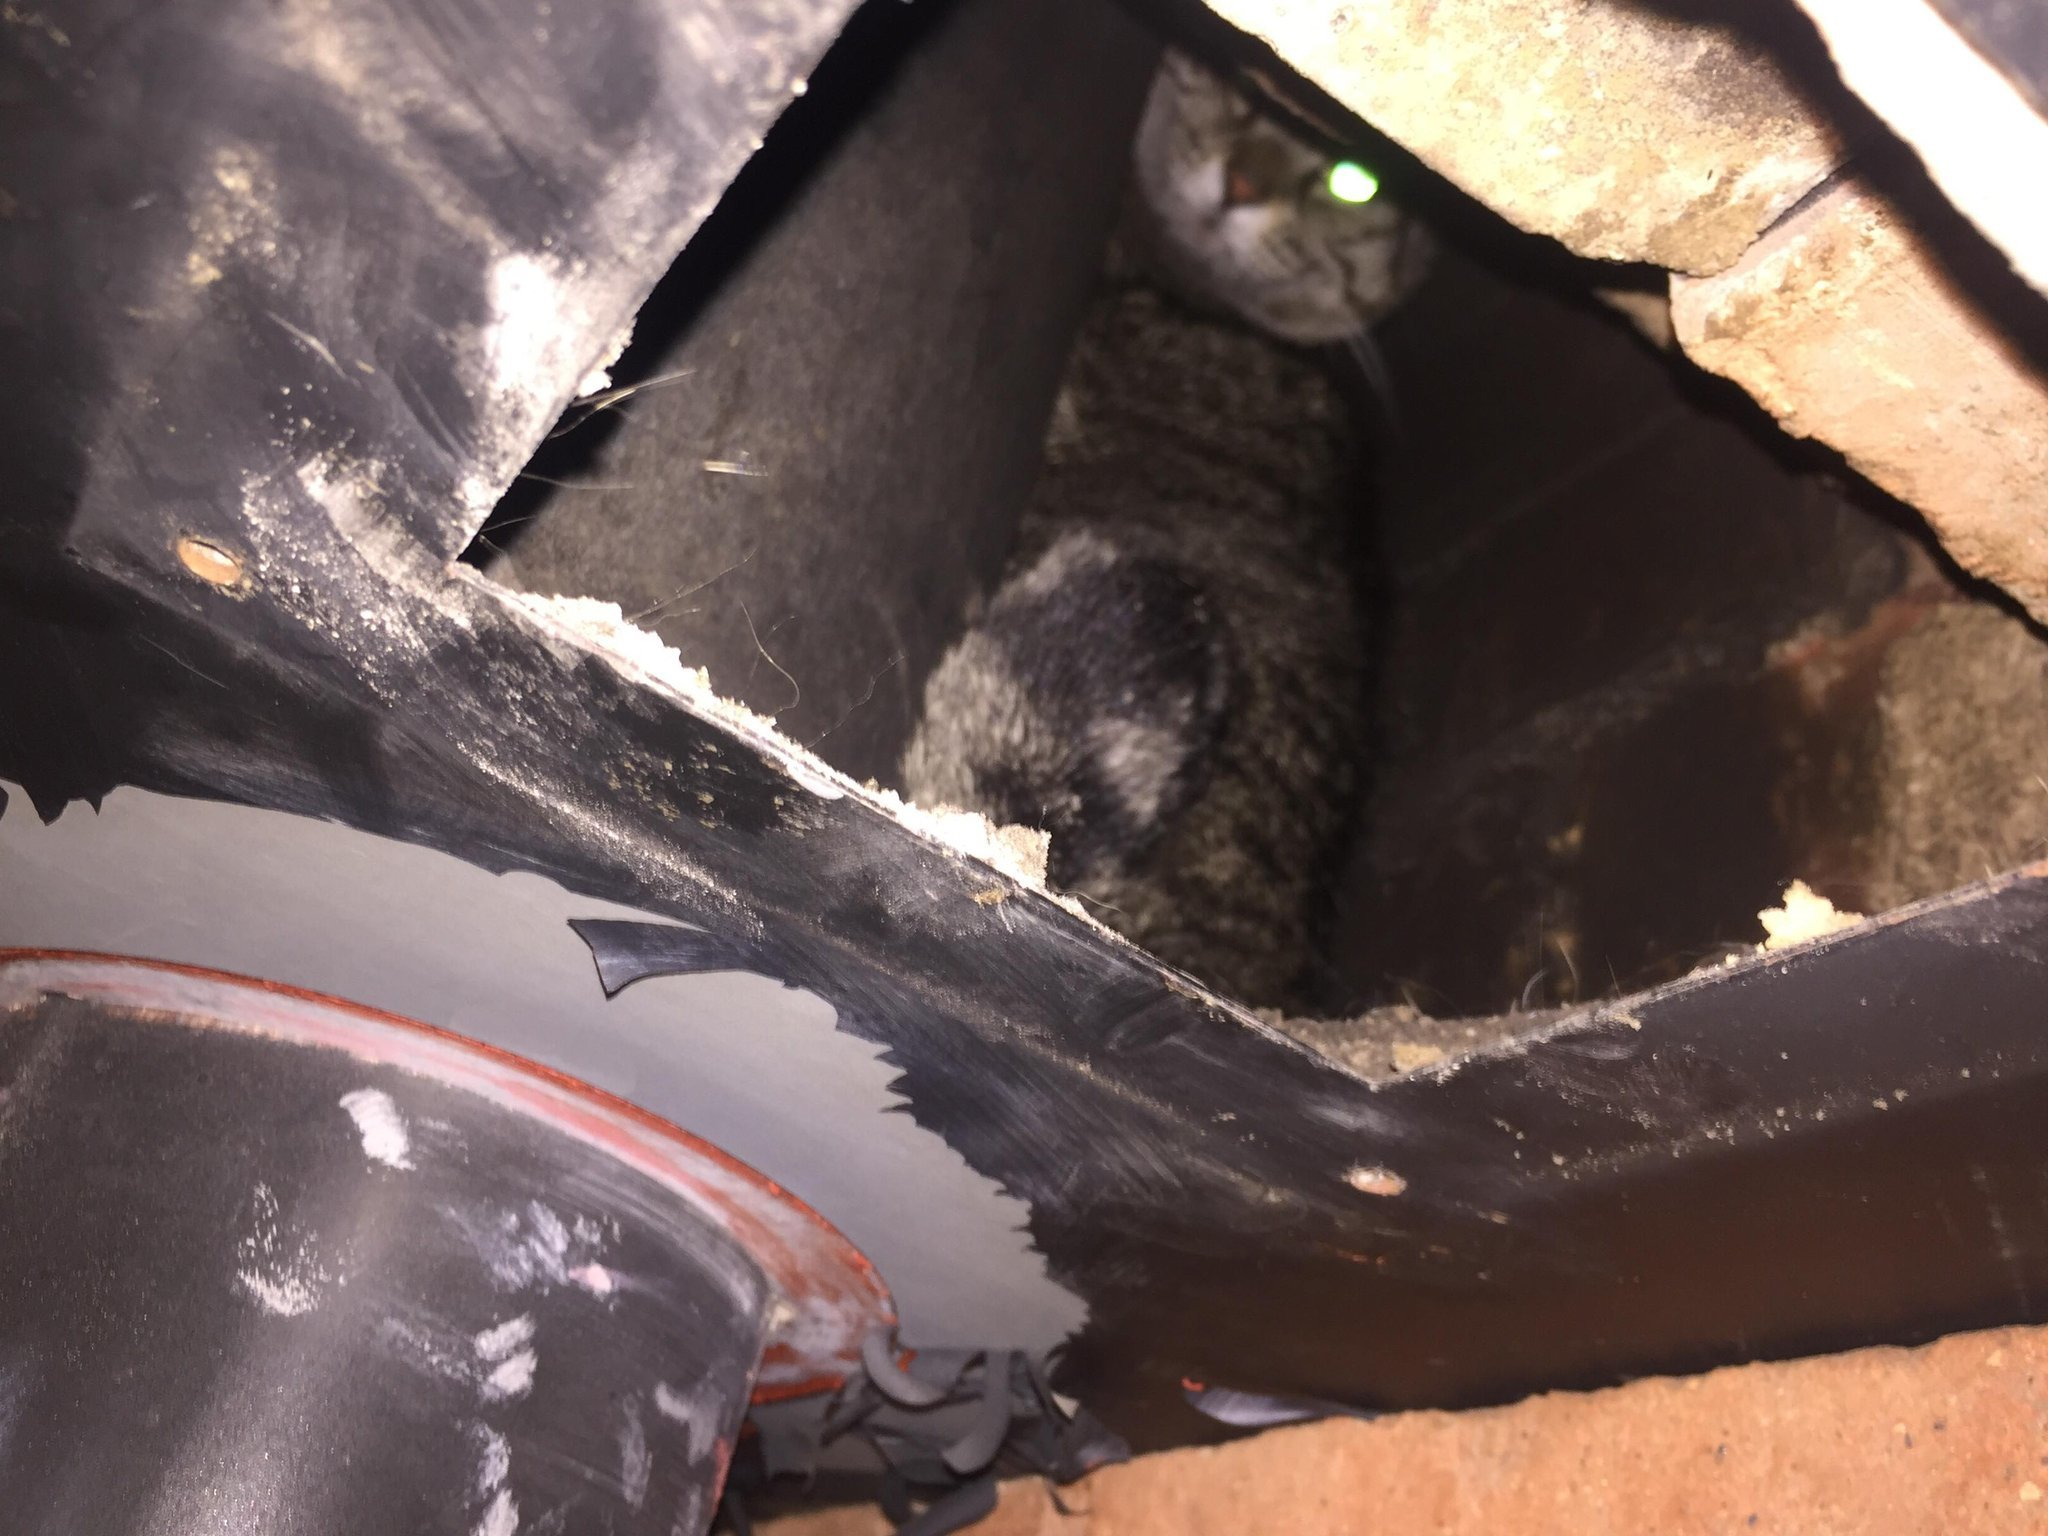 Beloved cat reported missing for nine days is rescued by firefighters from chimney breast